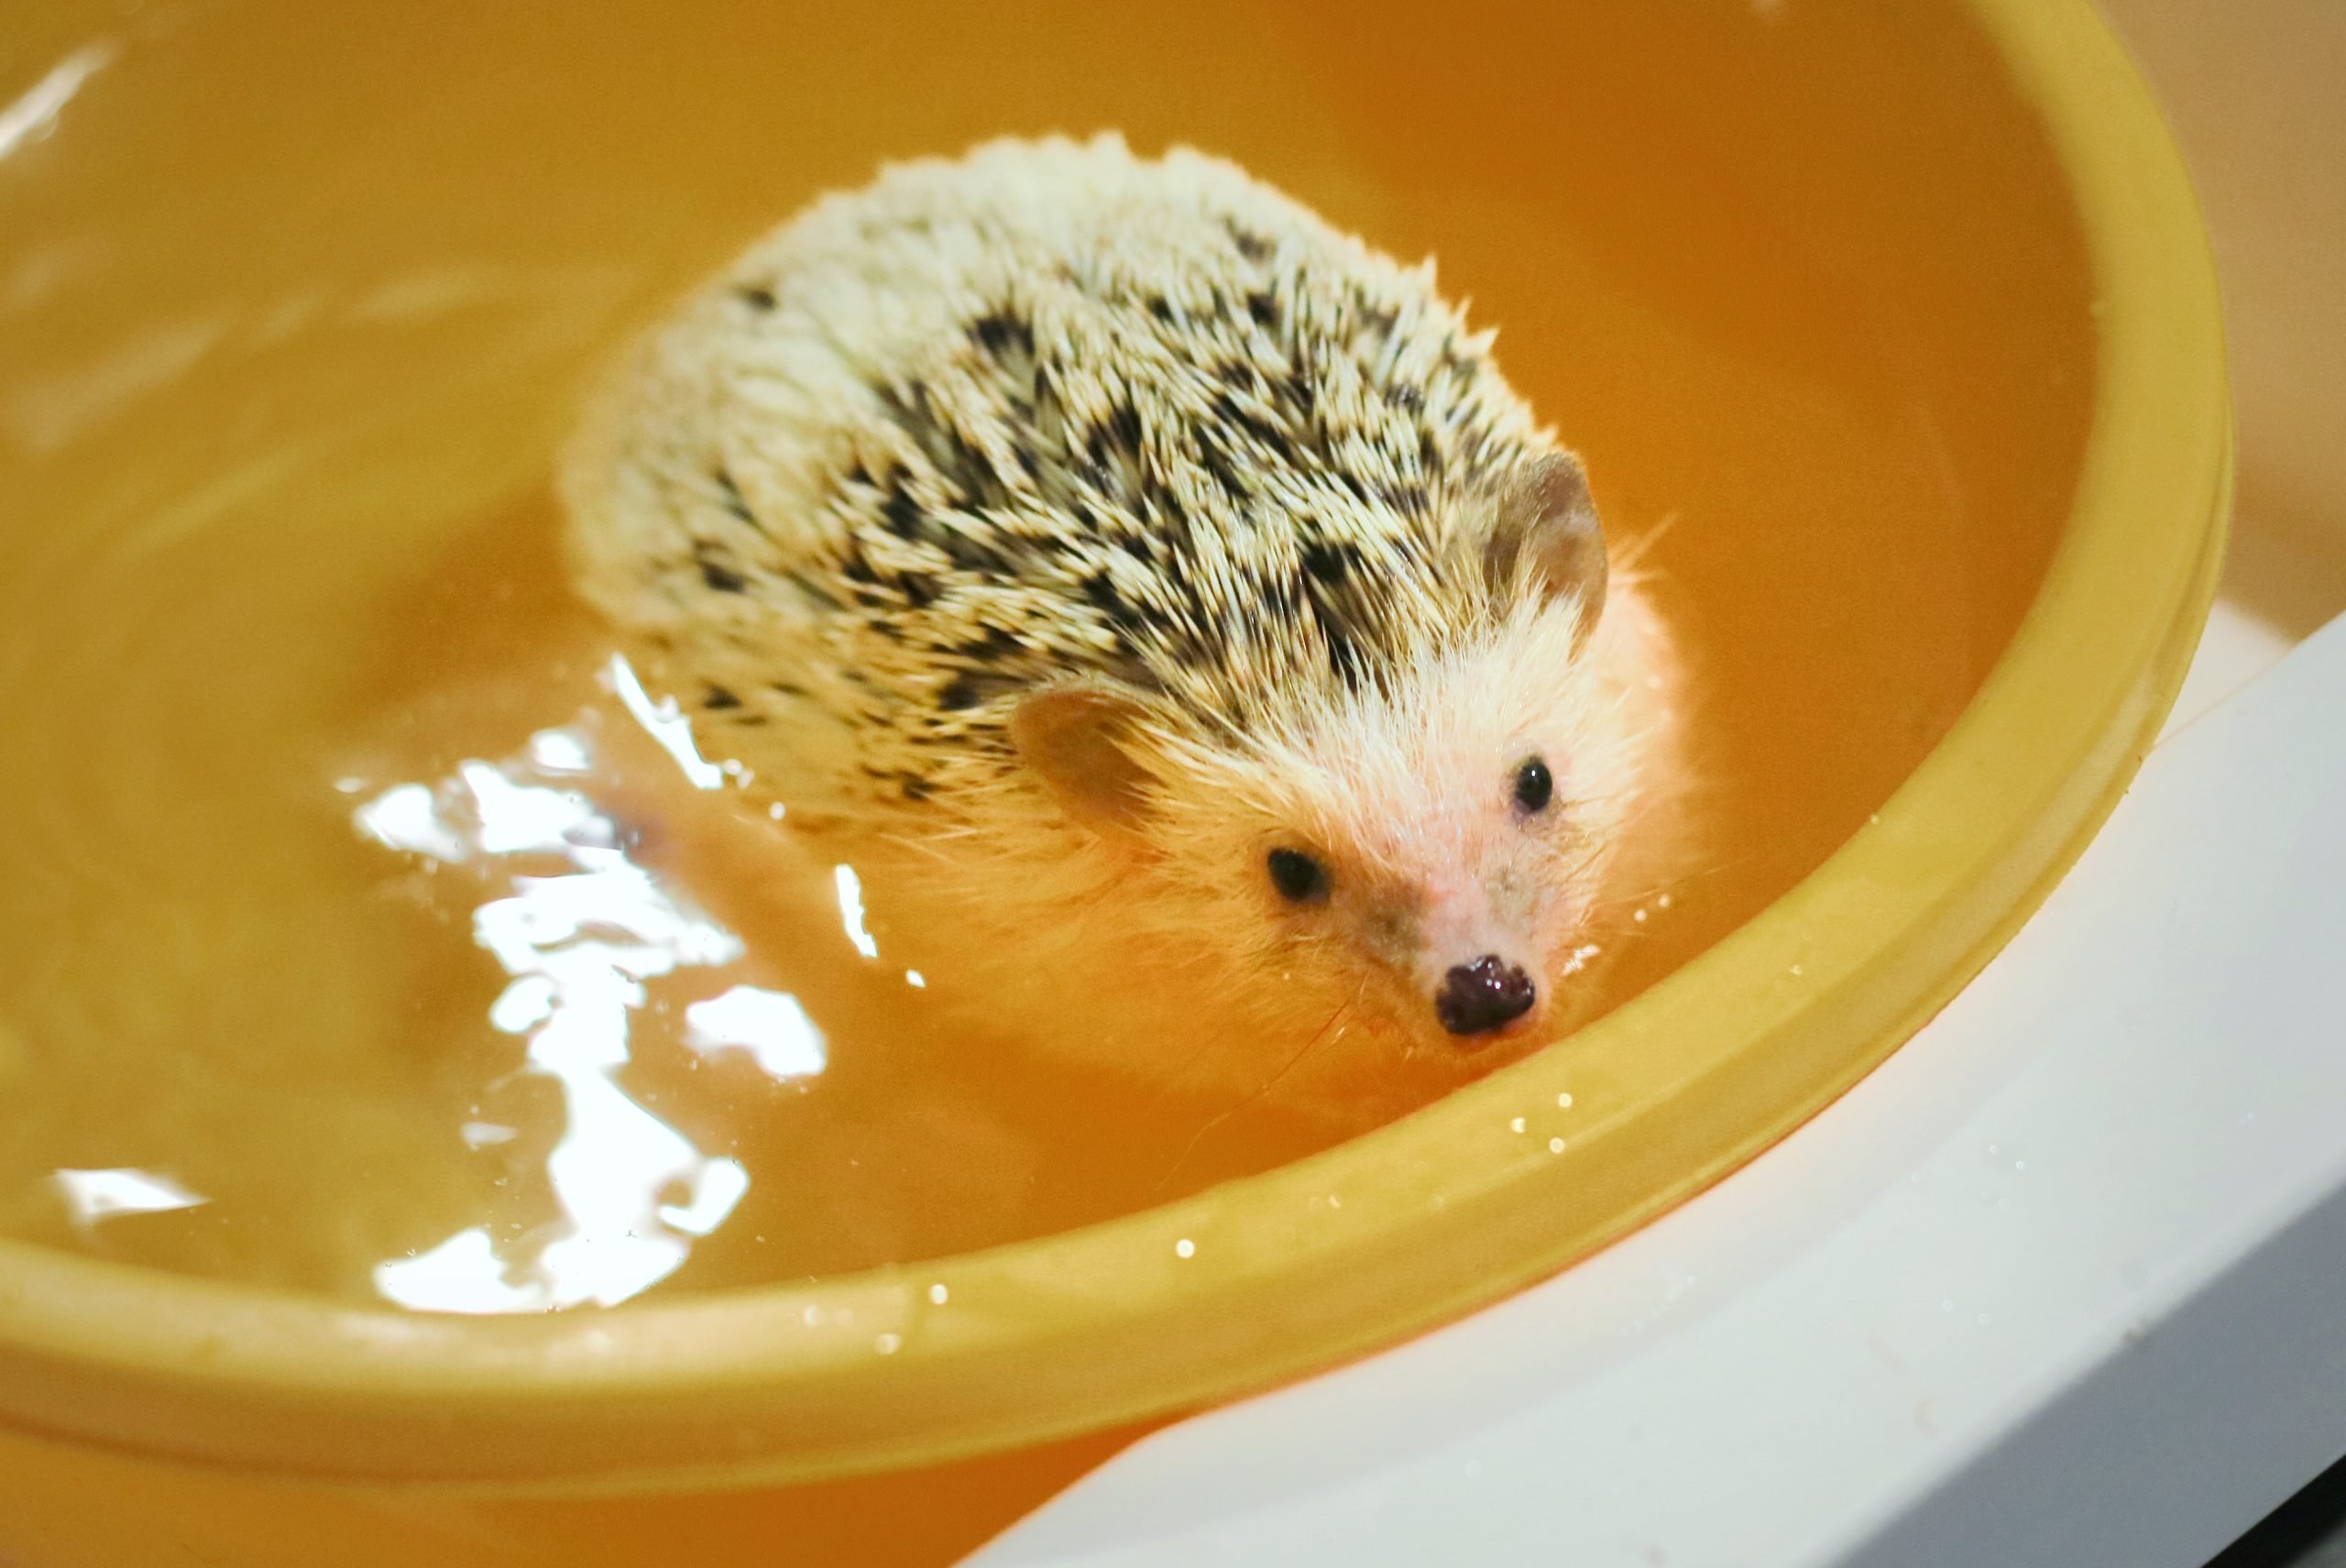 Young Hedgehog Swimming On The Yellow Bowl. Soft Focus. Animal Concept.